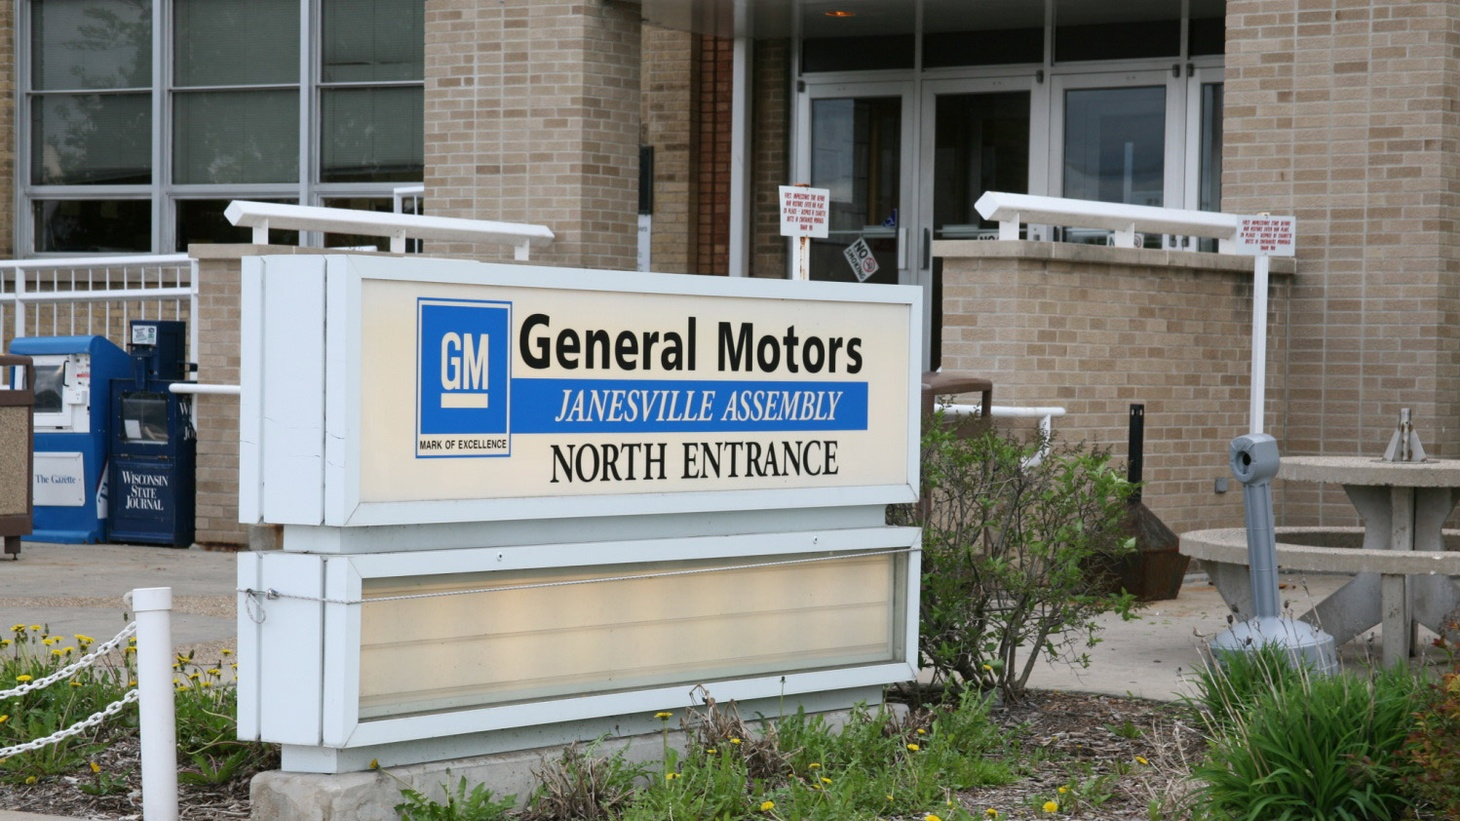 Janesville, Wisconsin is the hometown of Republican House Speaker Paul Ryan. But he couldn't prevent the closing of the General Motors factory after 100 years. We hear what's happened to what once was a model of American middle-class unity.